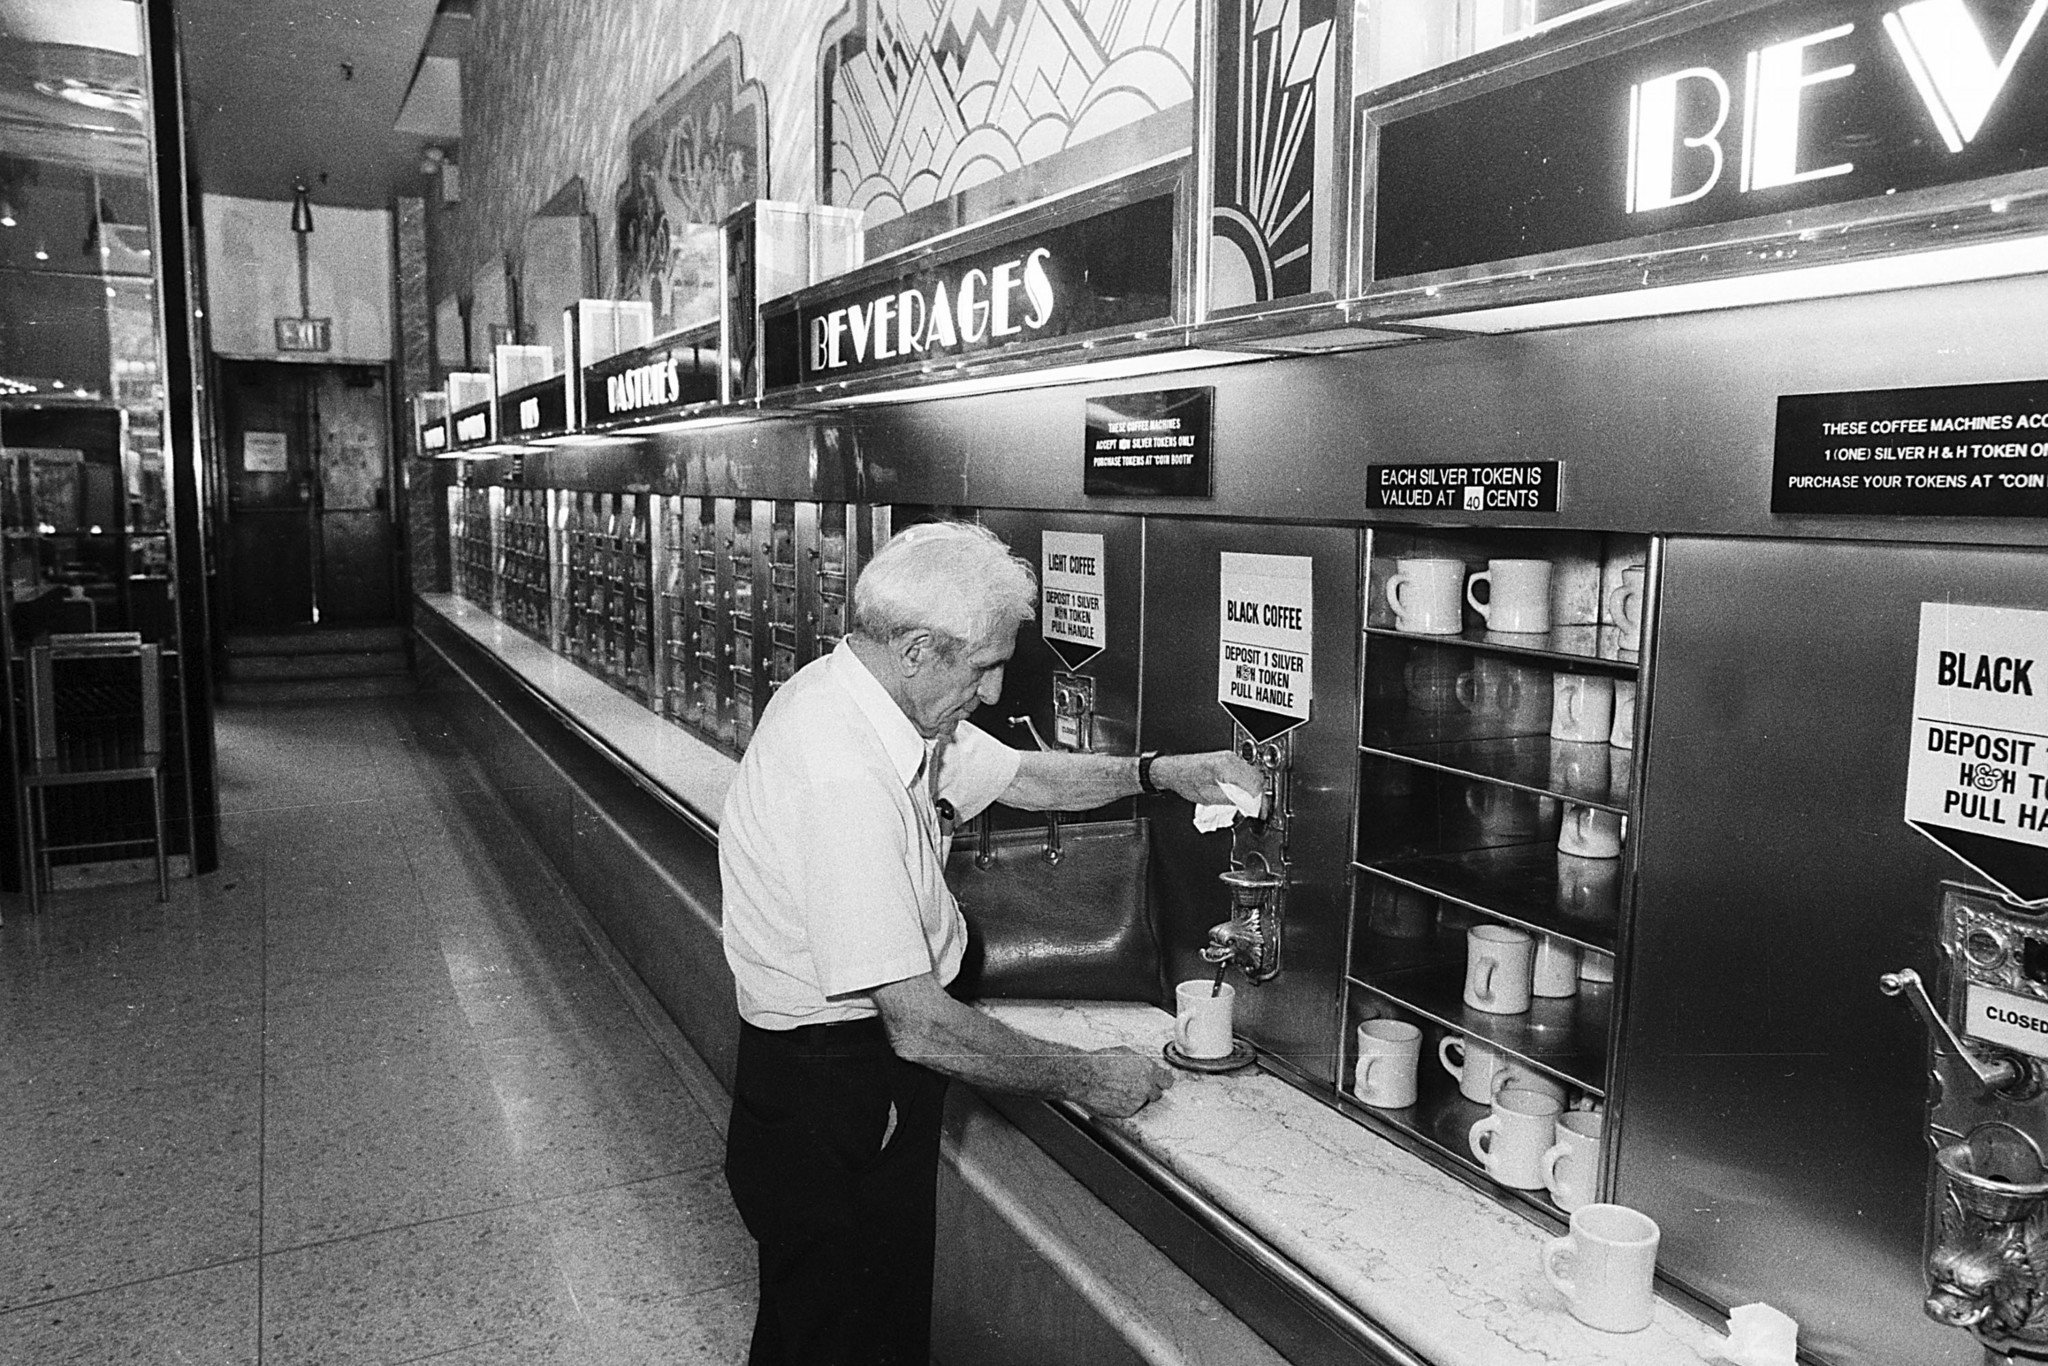 Does New York City Still Have Automats For Food